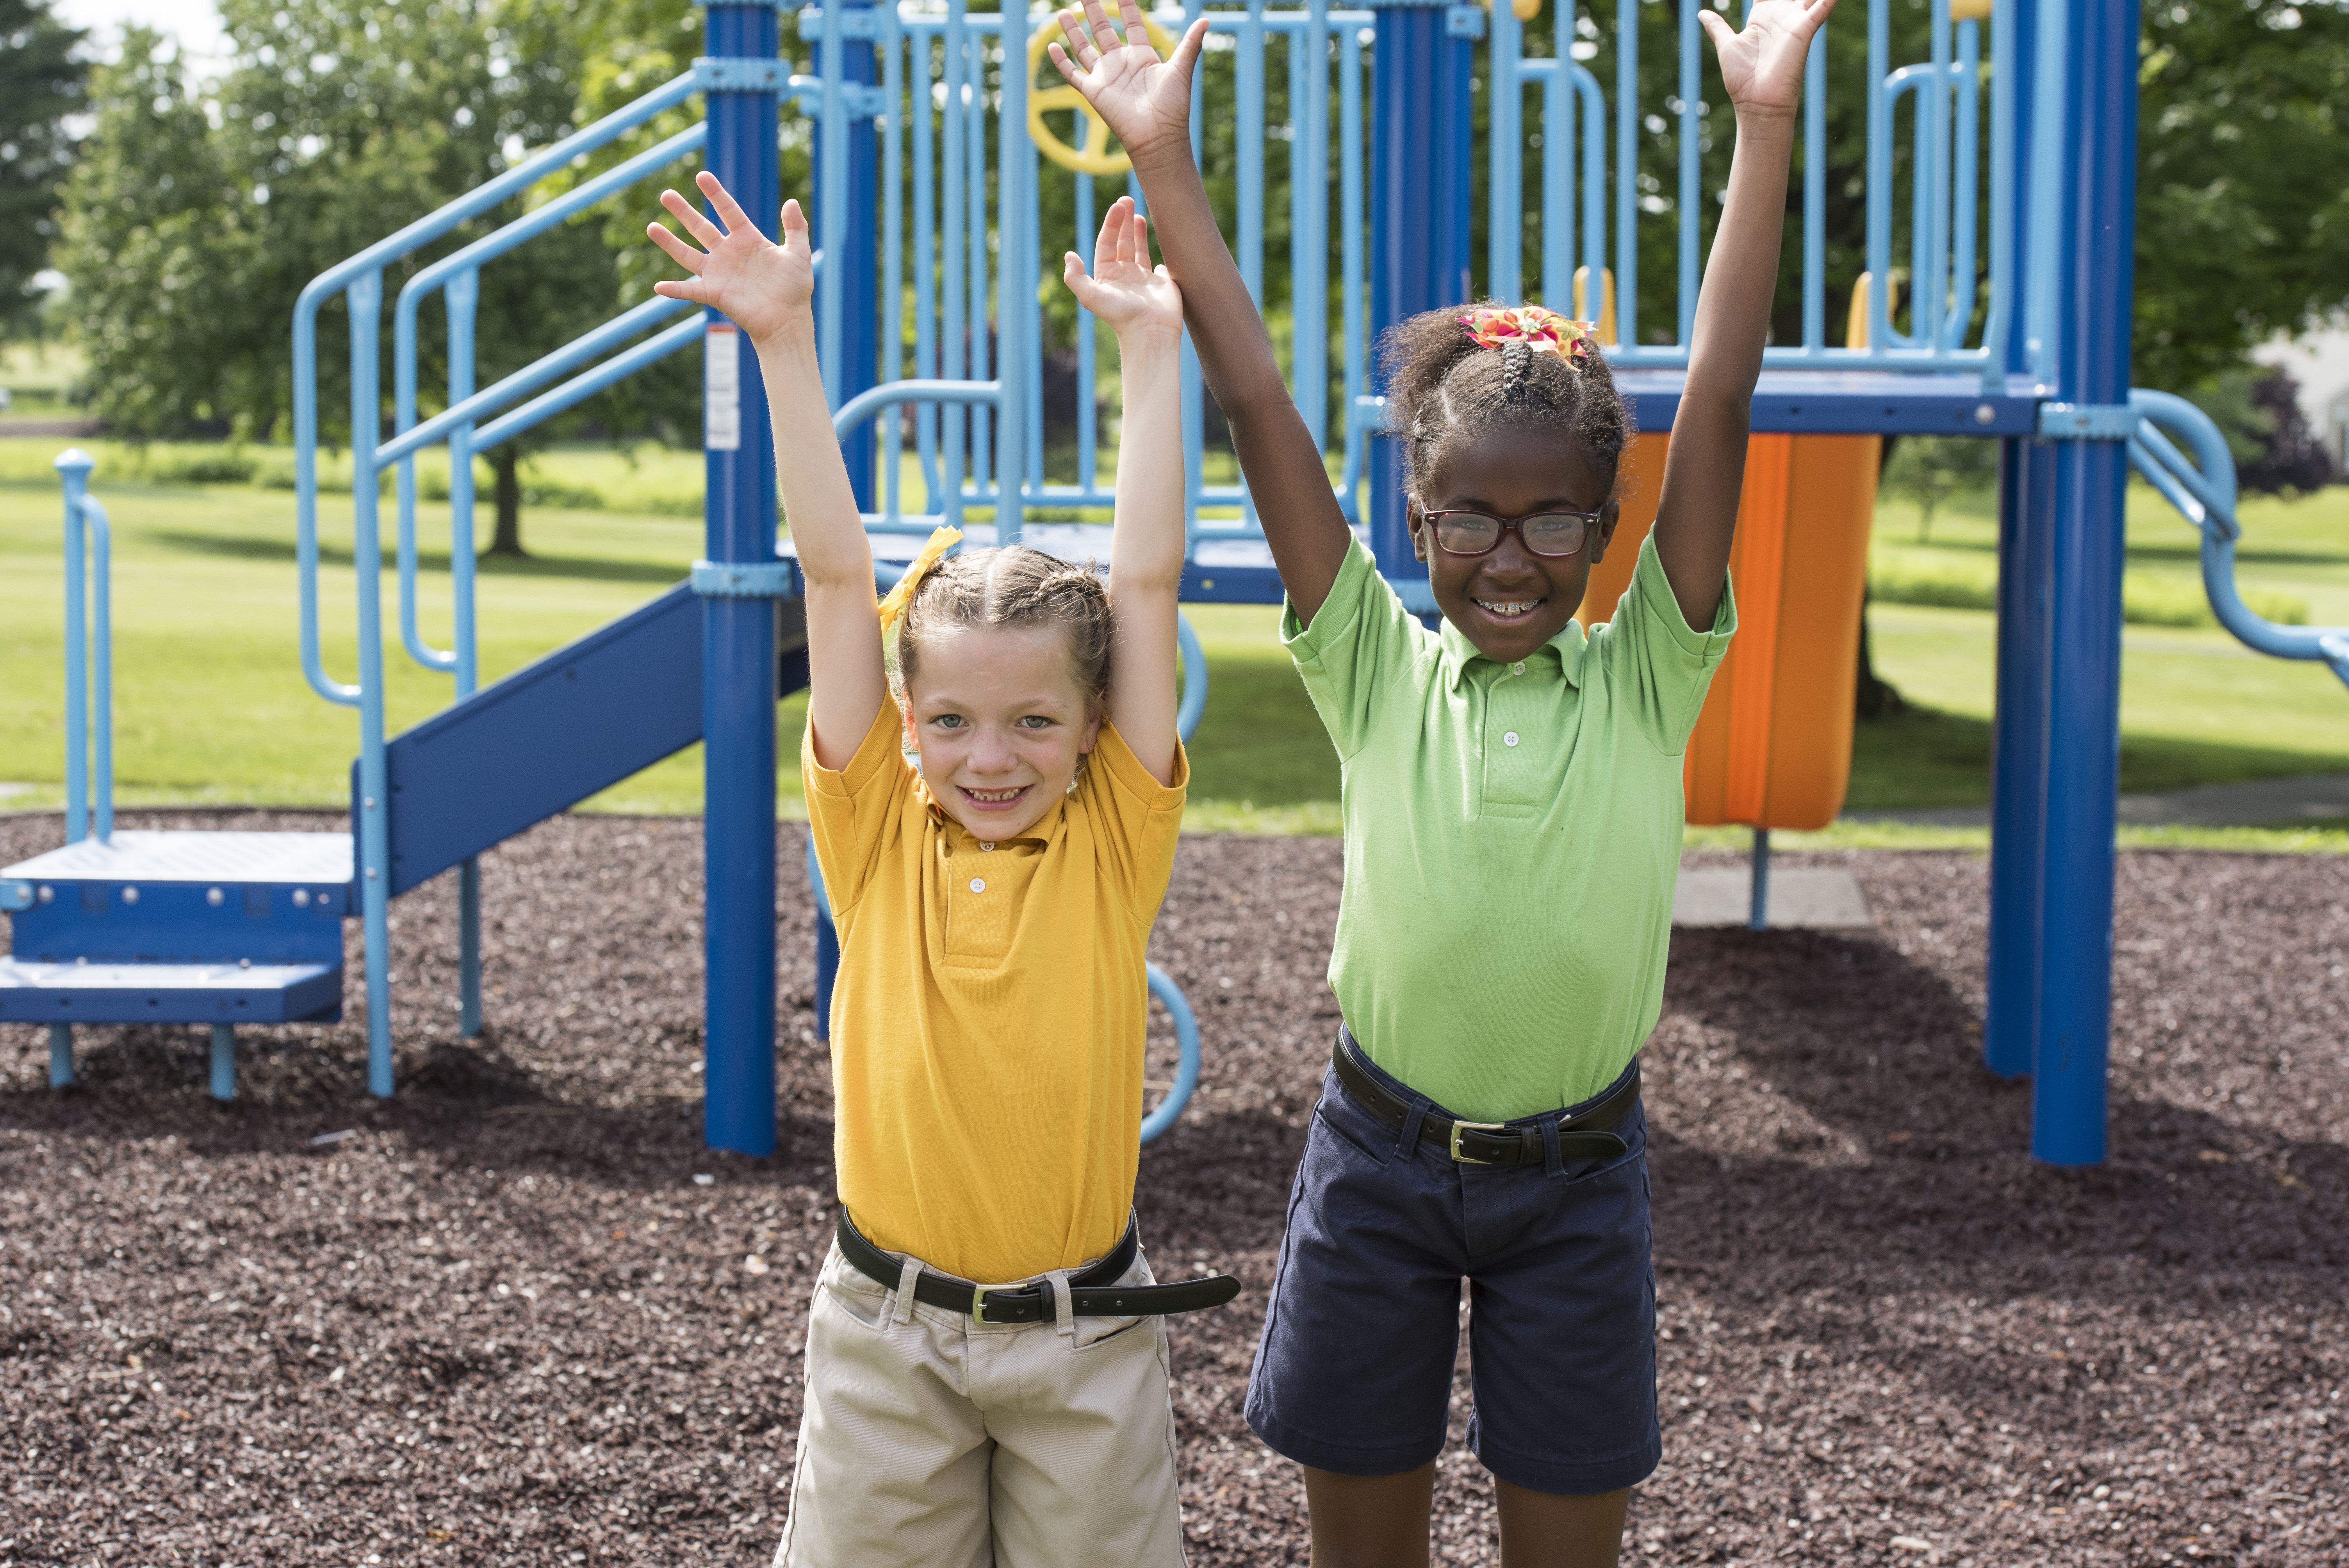 MHS students enjoy time on the playground.